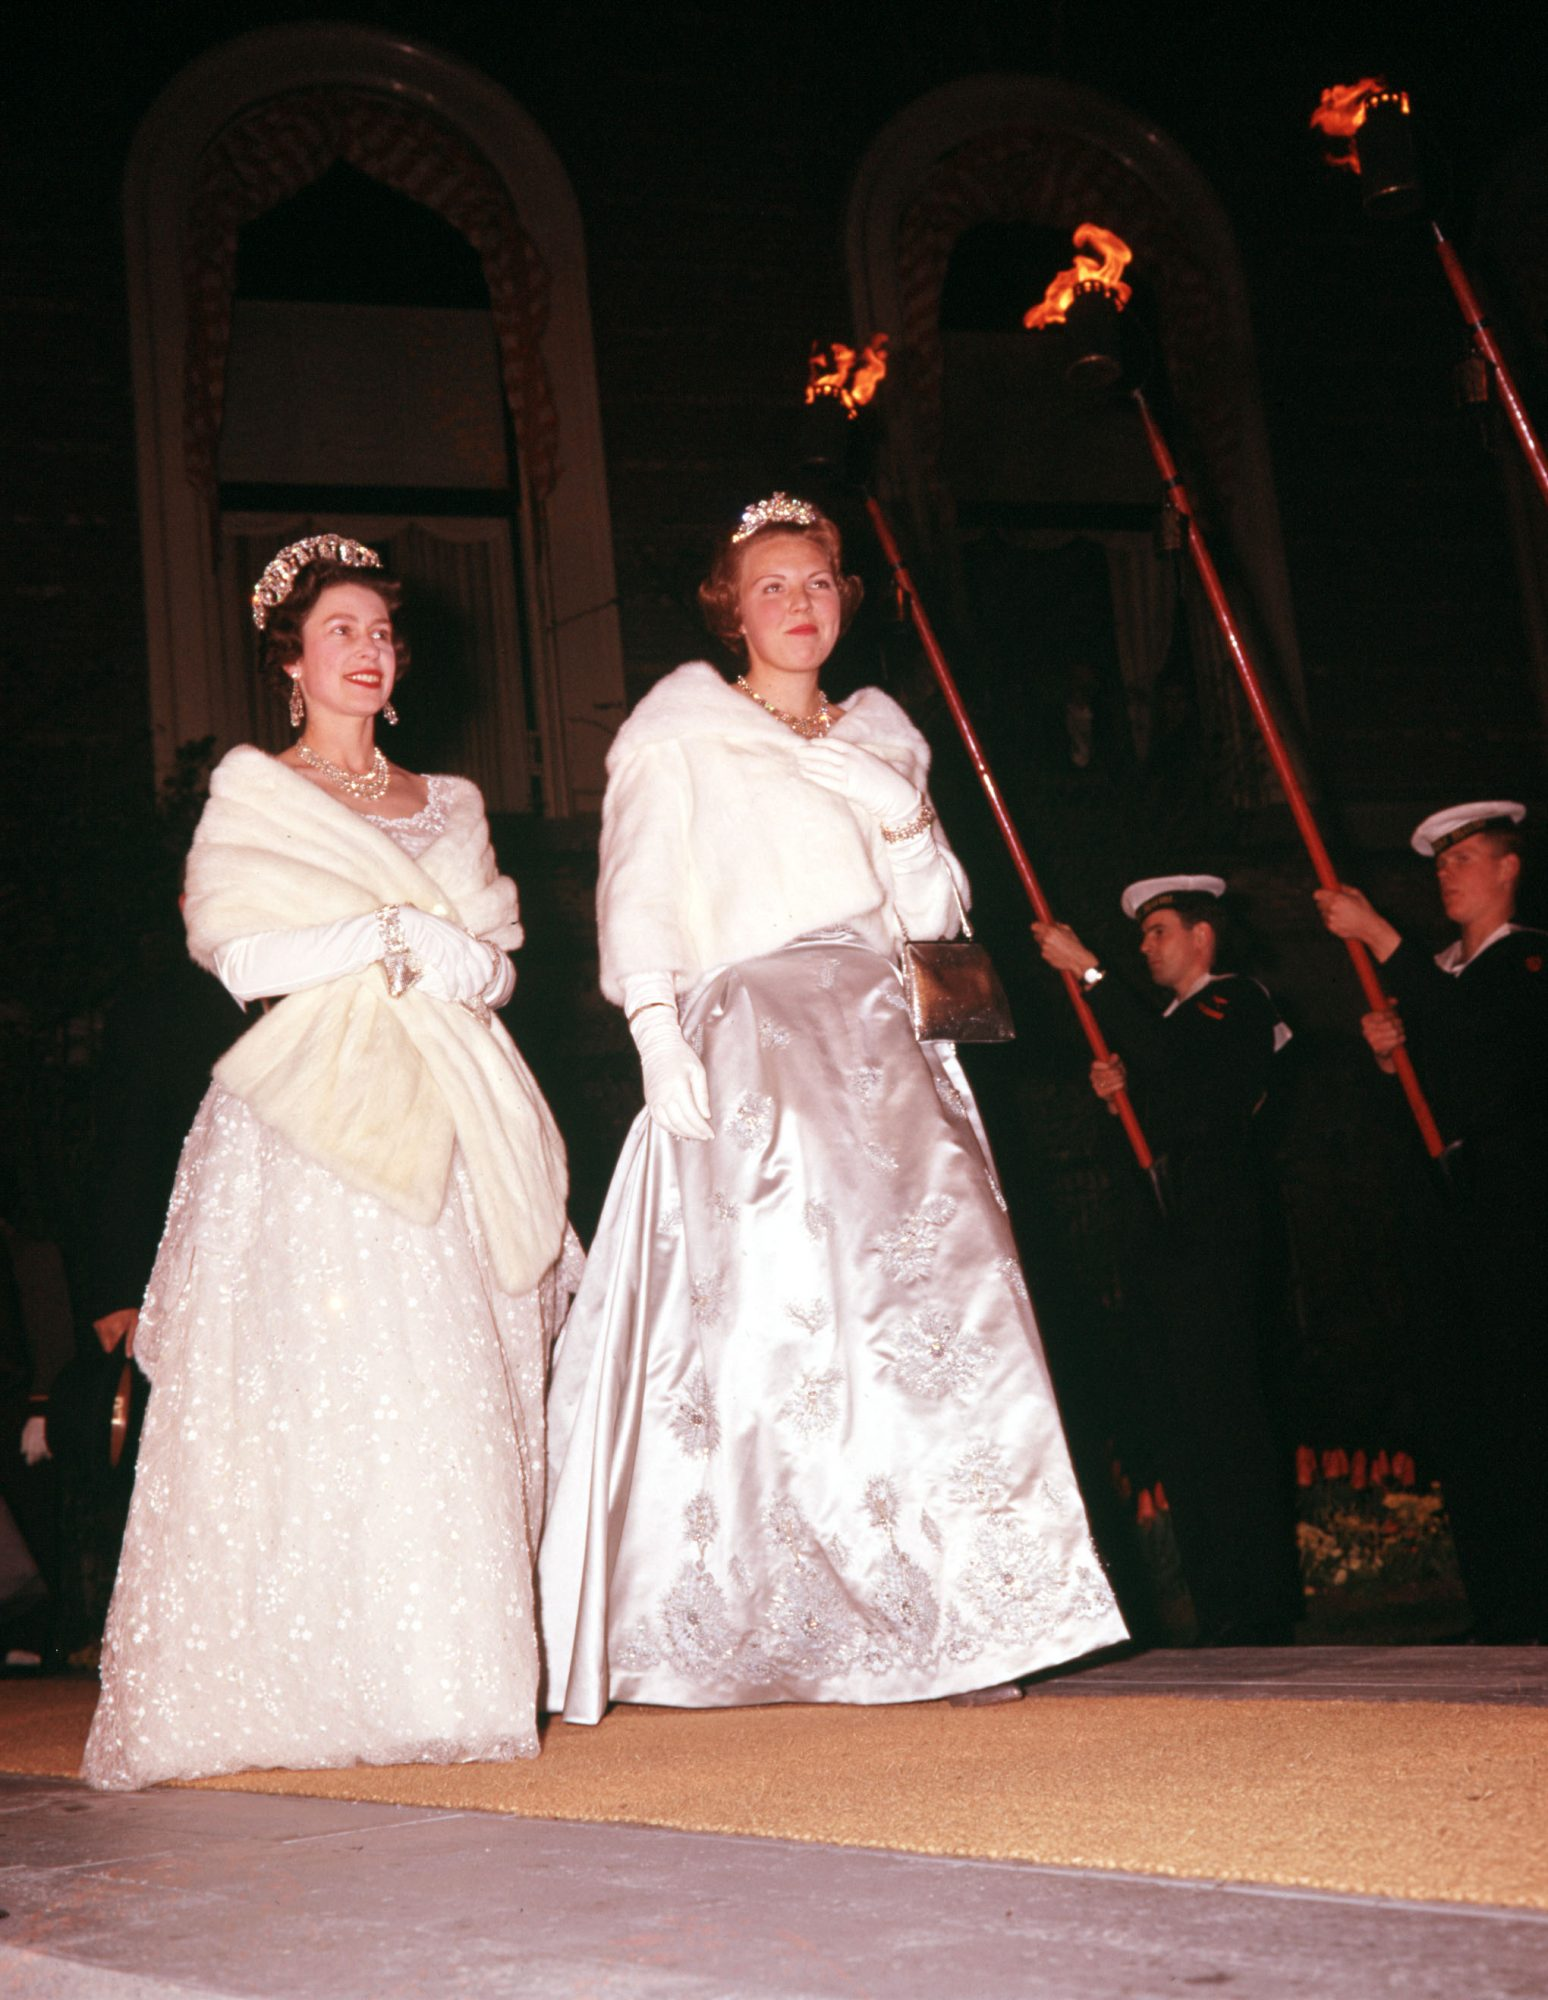 1962. 25th Wedding Anniversary of Queen Juliana and Prince Bernhard of Holland. Queen Elizabeth II of Great Britain (left) and Dutch Princess Beatrix come on board the Oranje.